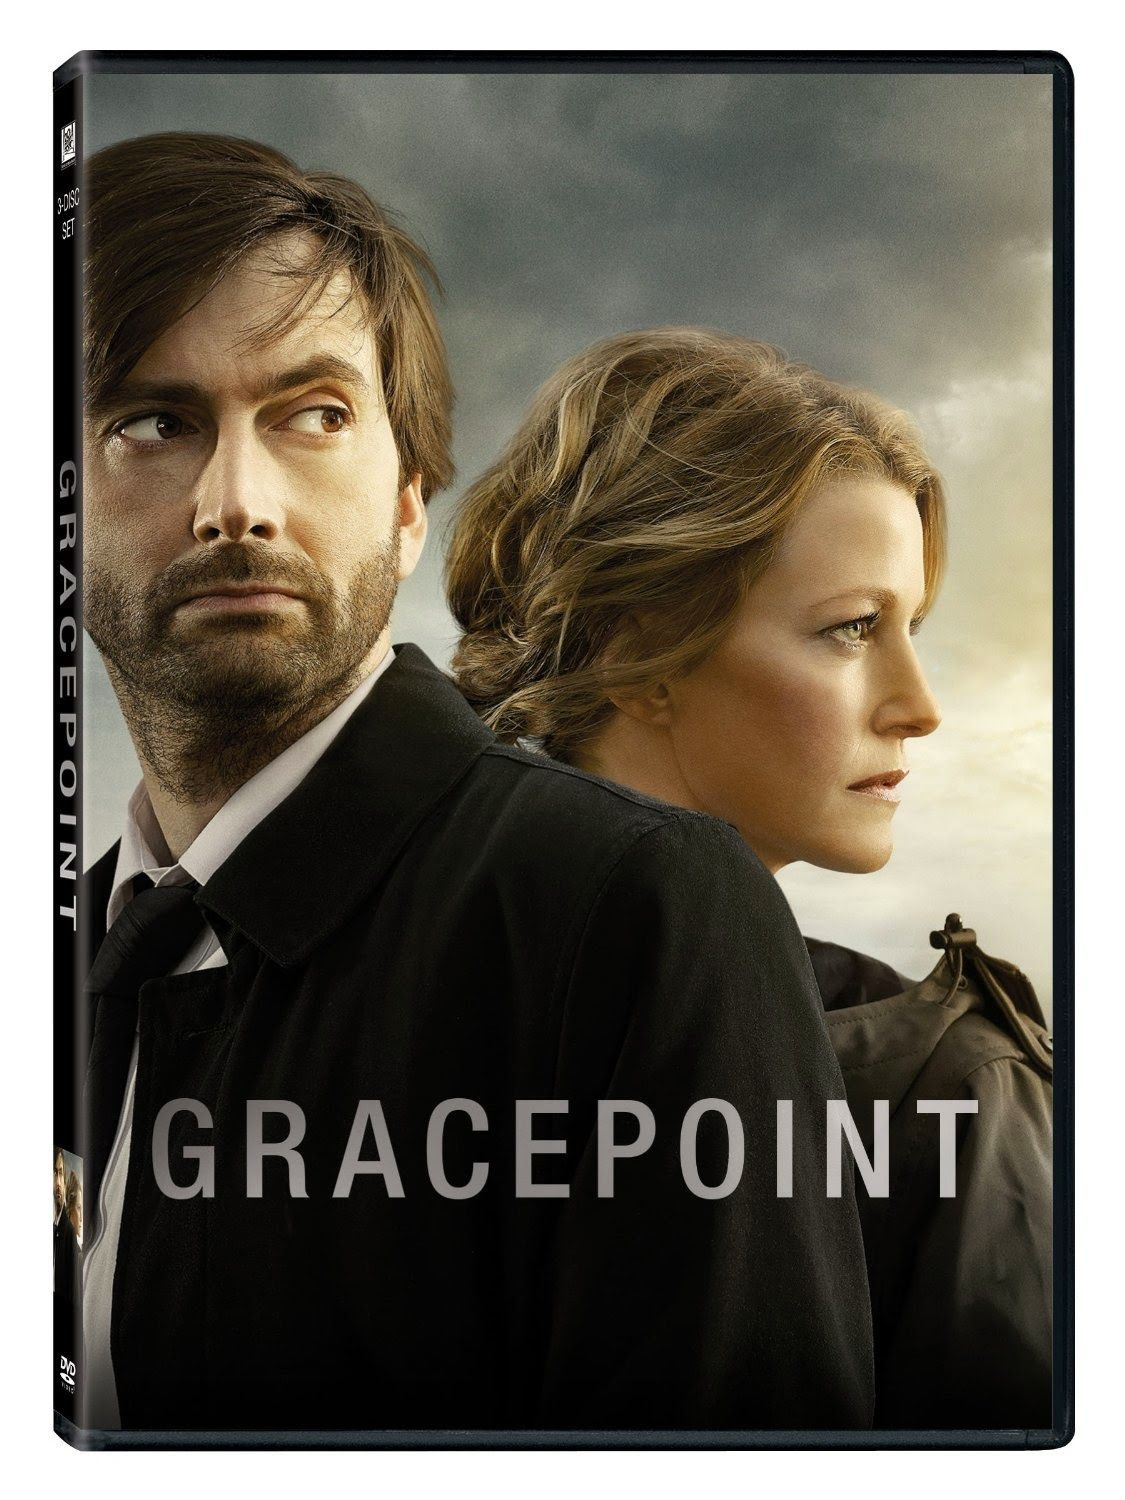 USA RELEASE: Gracepoint DVD Now Shipping From Amazon